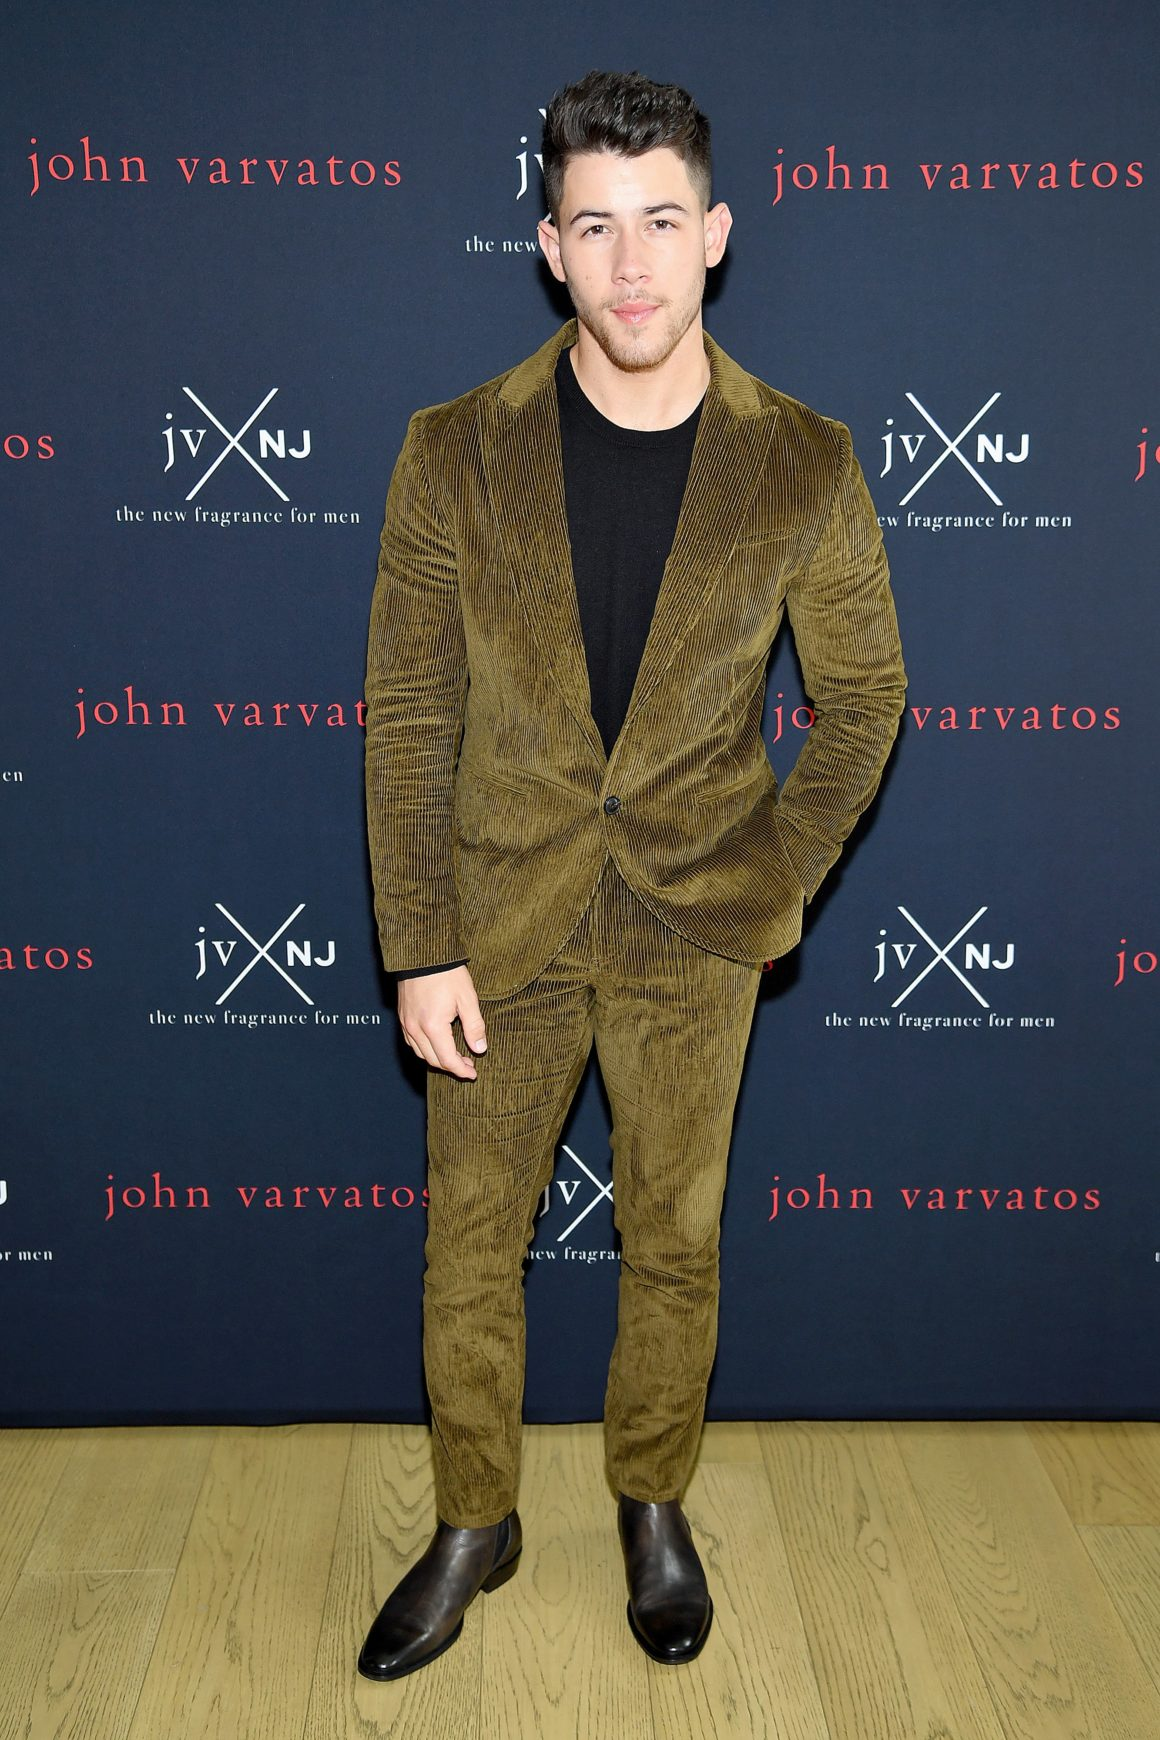 Nick Jonas And John Varvatos Launch Their New Fragrance JVxNJ Silver Edition